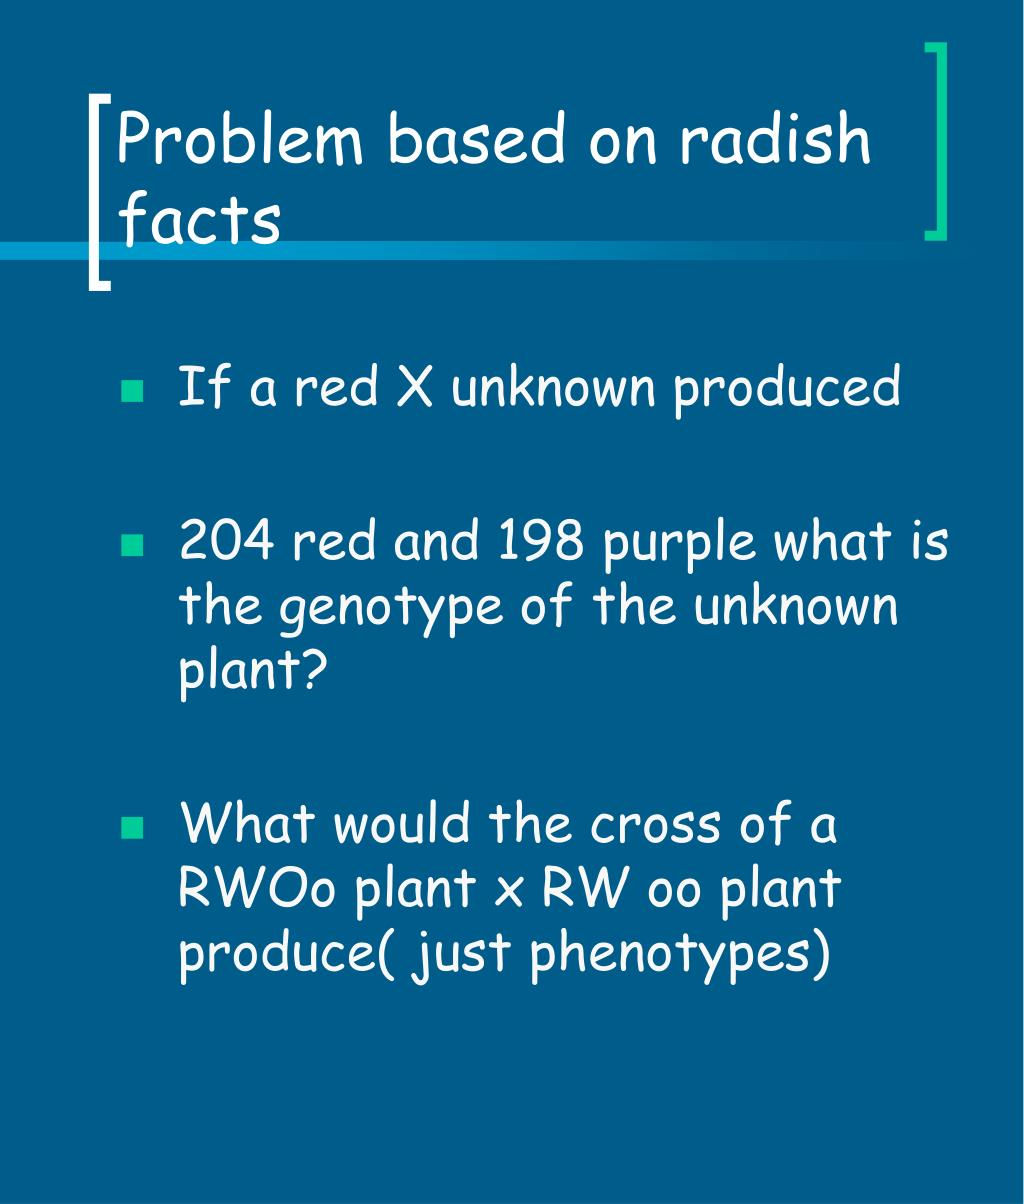 Problem based on radish facts